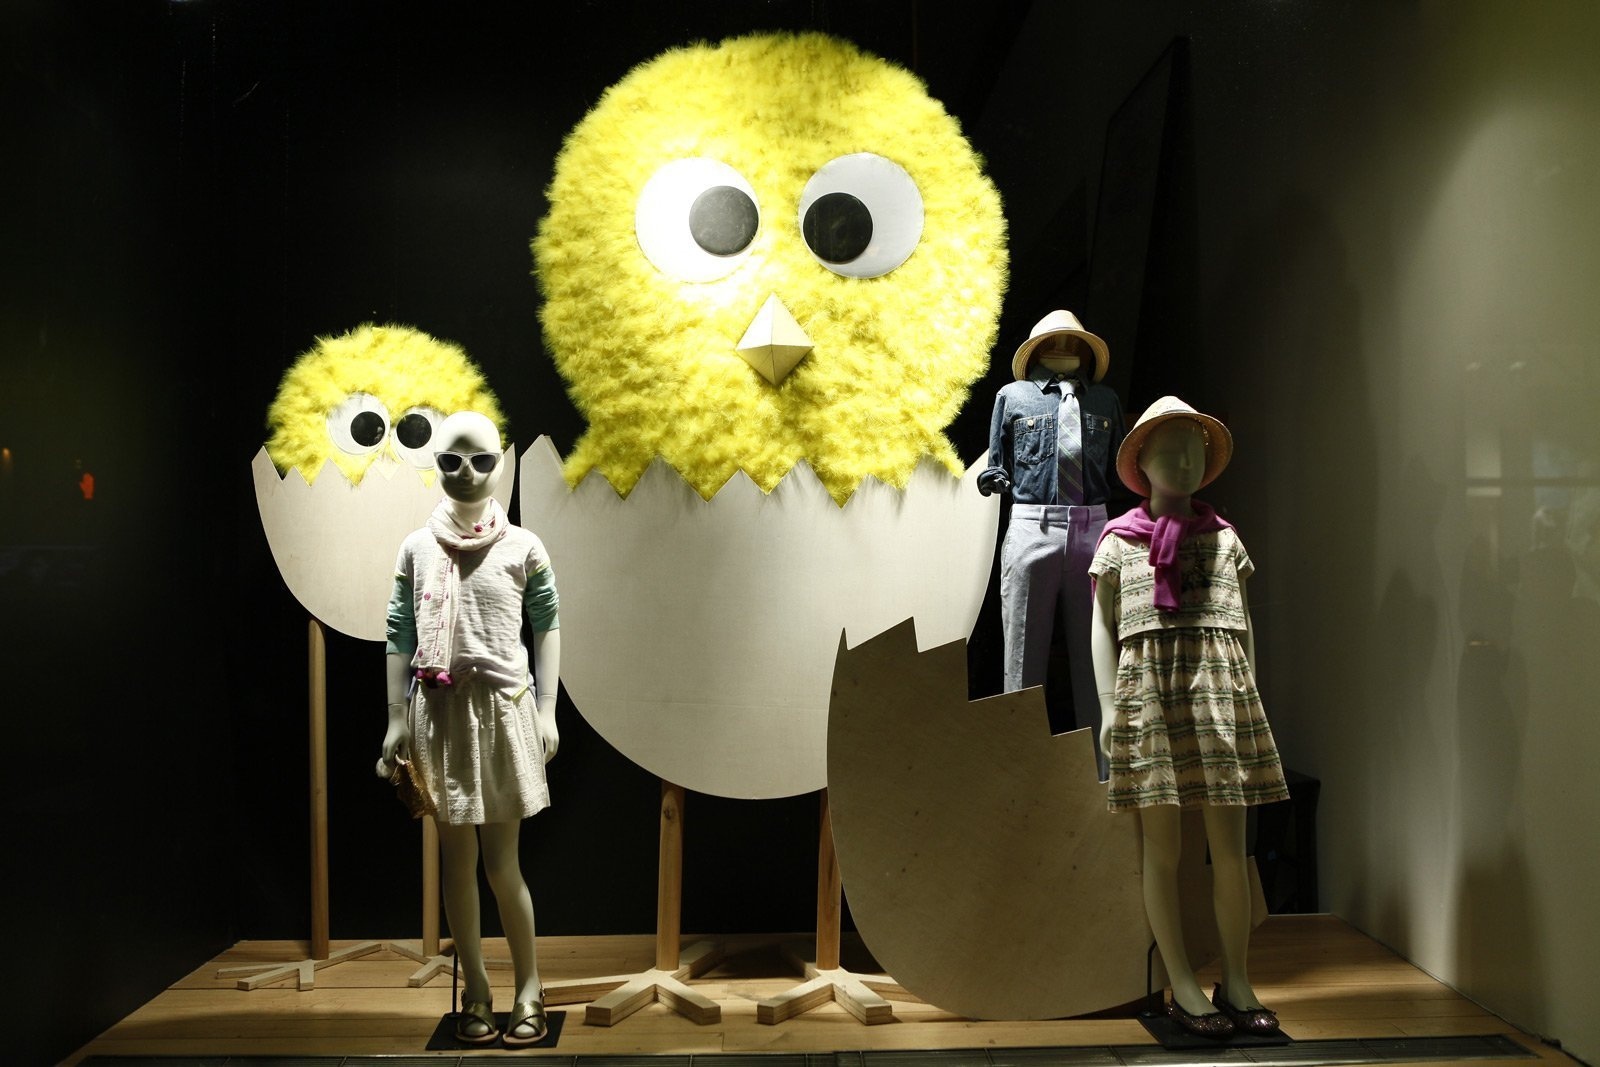 This it's a kids store window display, decorated for Easter with chicks getting out from eggs, made from a board, wood and yellow feathers.